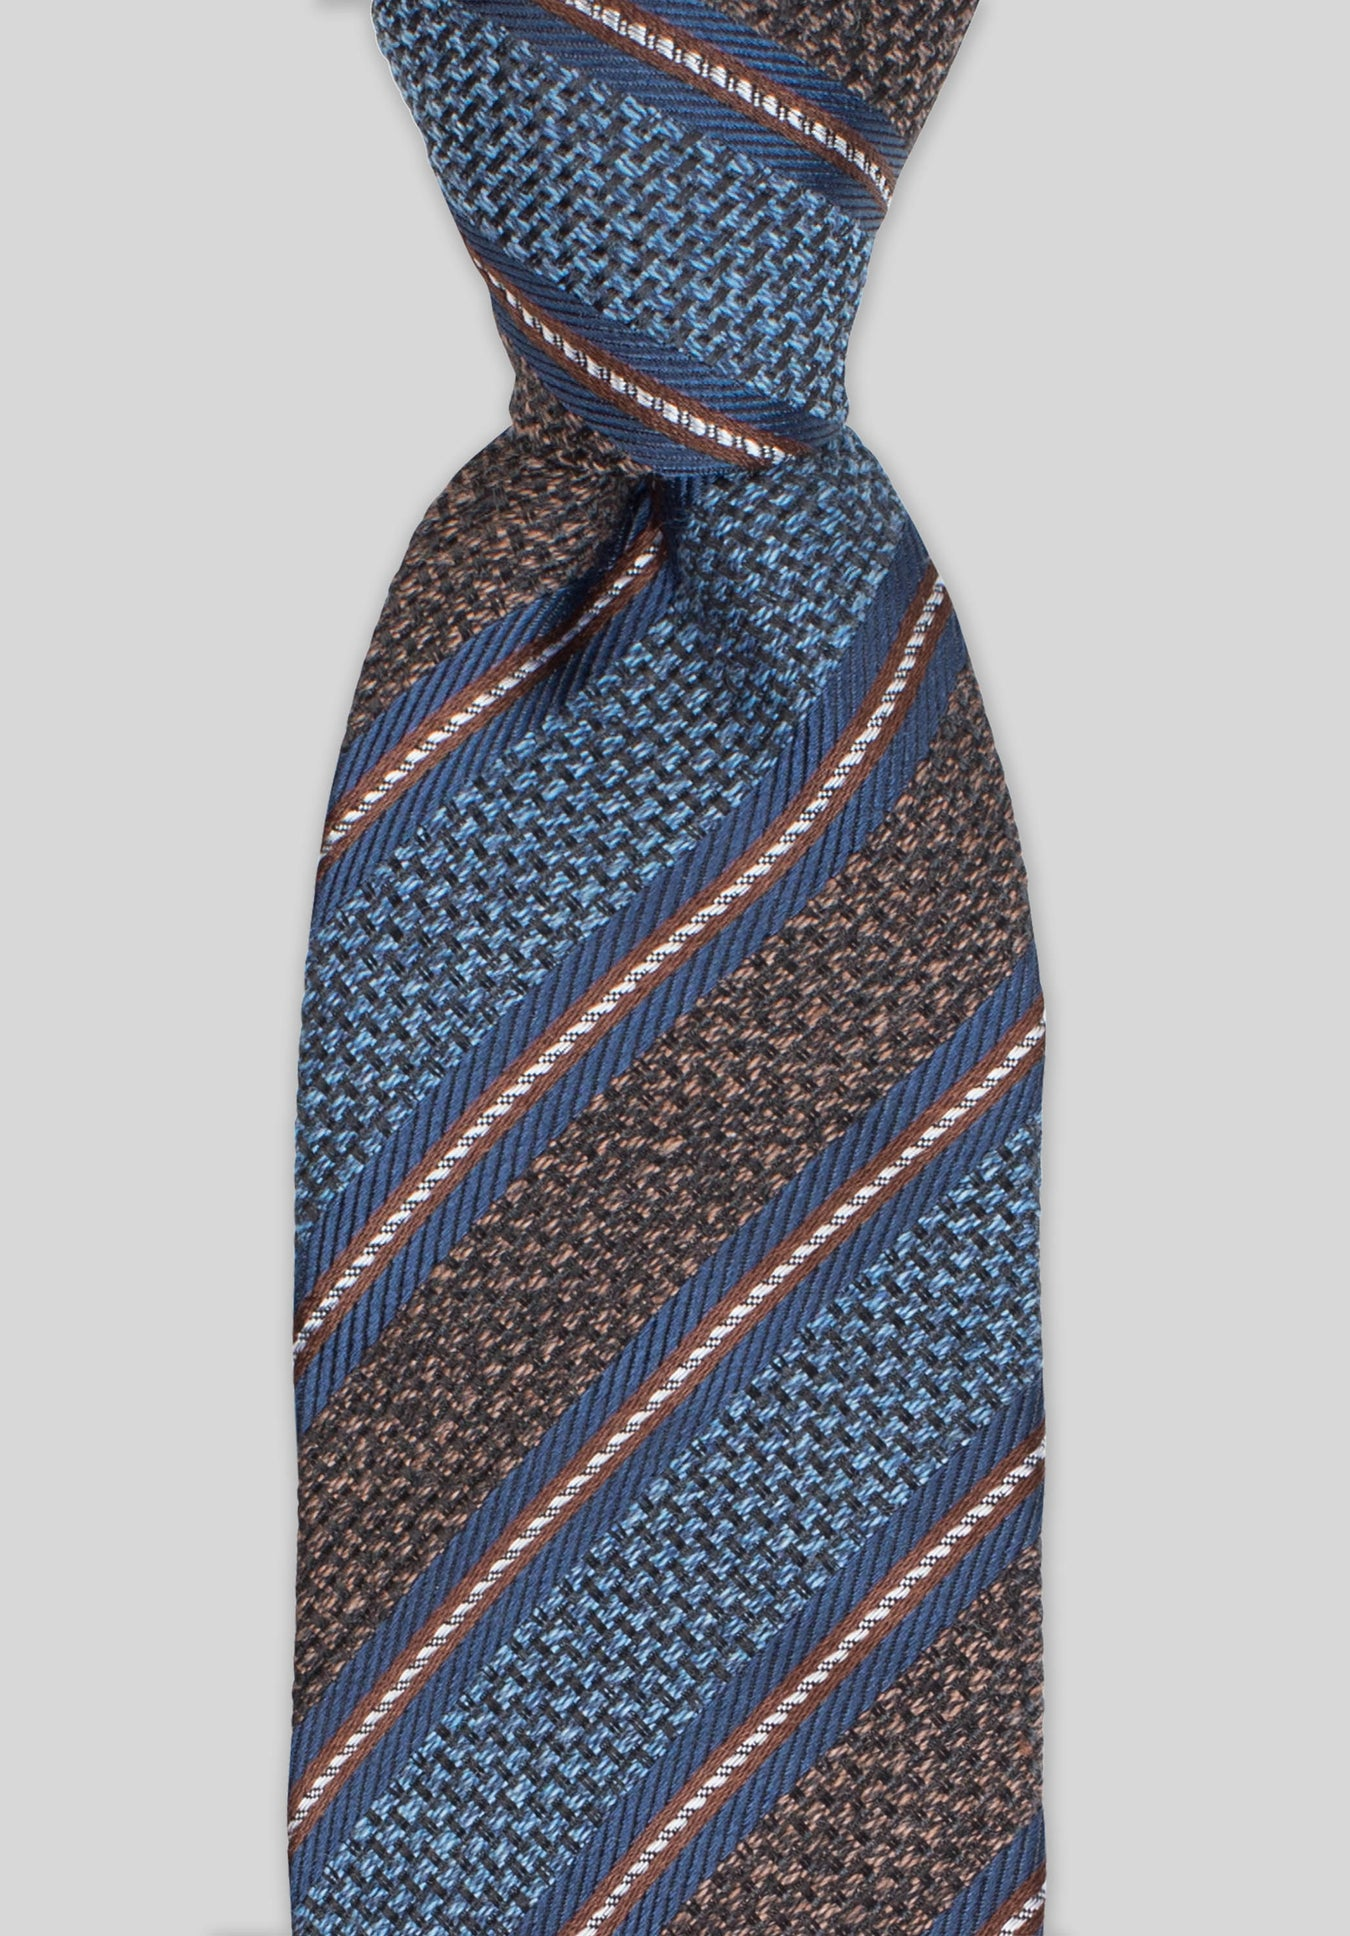 HESSIAN STRIPE 7.5CM TIE - Chocolate